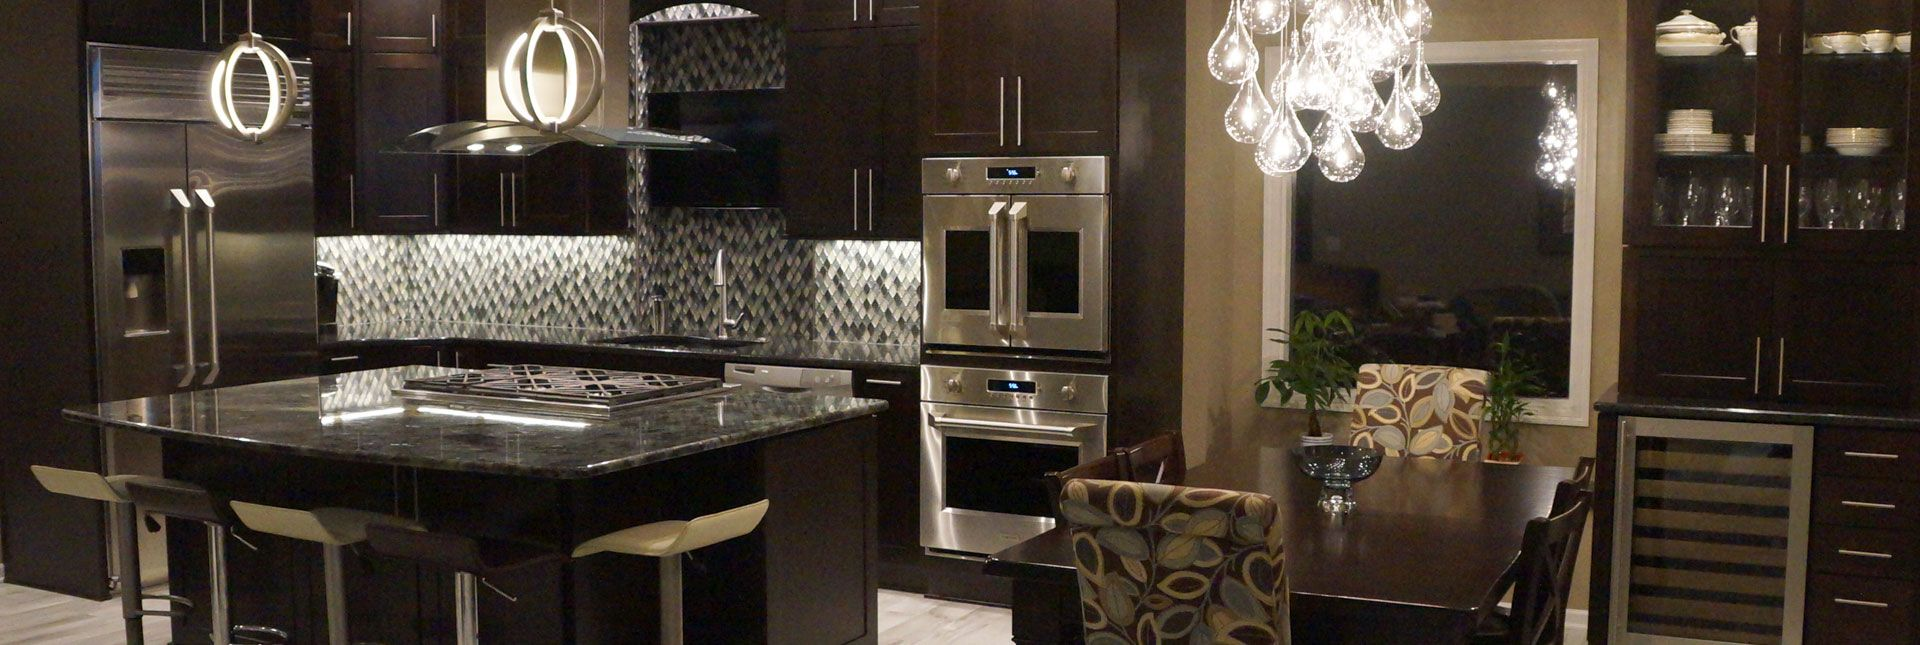 Kitchens By Design Omaha Modern Interior Paint Colors Check More At Http Mindlessapparel Com Kitchen Kitchen Remodel Planner Kitchen Remodel Kitchen Design